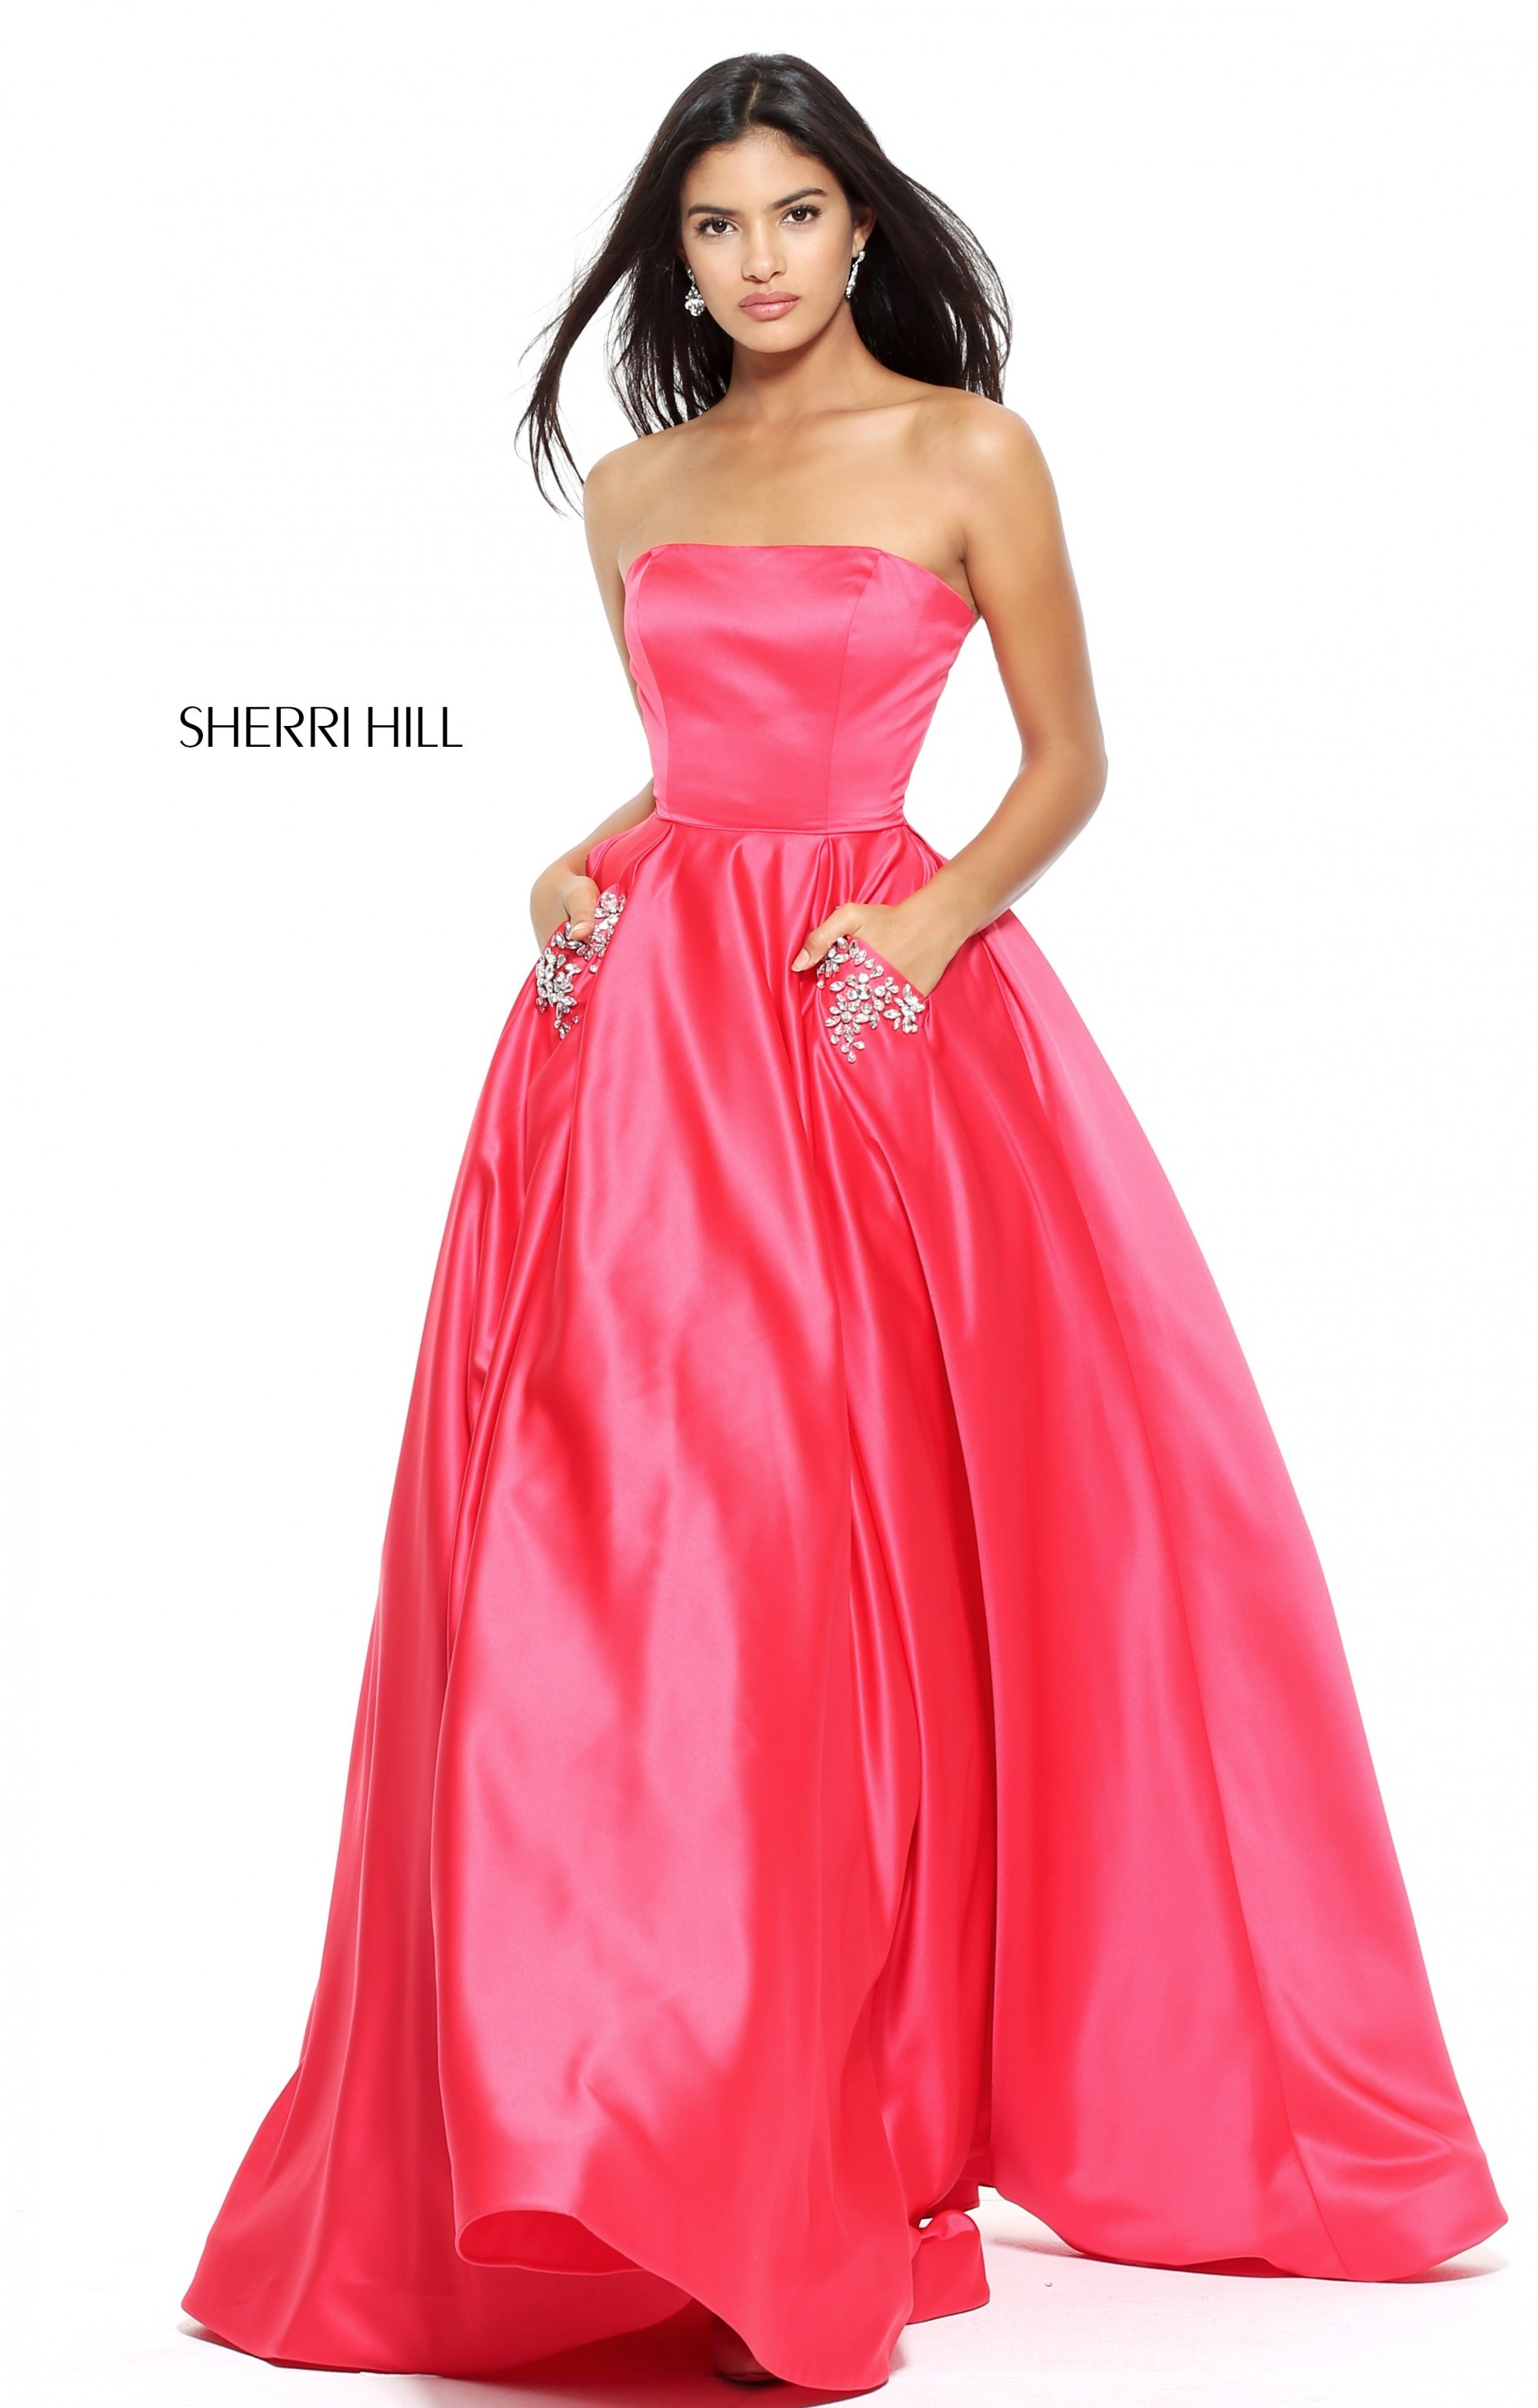 Funky Prom Dresses In Tifton Ga Image Collection - Colorful Wedding ...